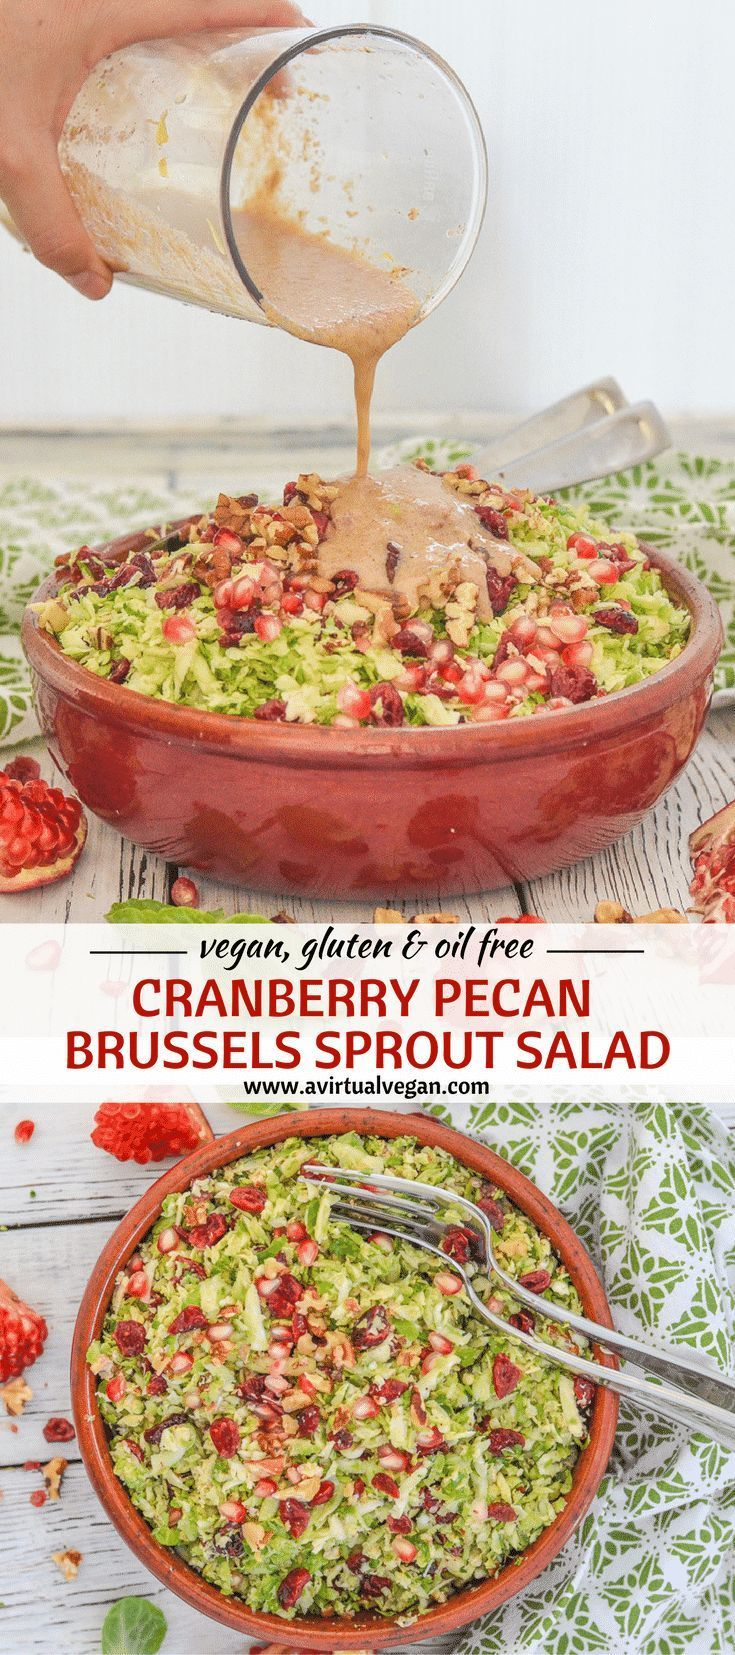 This citrus and cinnamon infused Cranberry Pecan Brussels Sprout Salad is fresh & absolutely packed with flavour & interesting textures. It's also hearty & warming thanks to the orange & cinnamon vinaigrette. Perfect for all of your fall & winter entertaining! The prep was made easy with the Braun MultiQuick 9.   via @avirtualvegan  #sponsored #ConquerTheUnexpected #MQ9